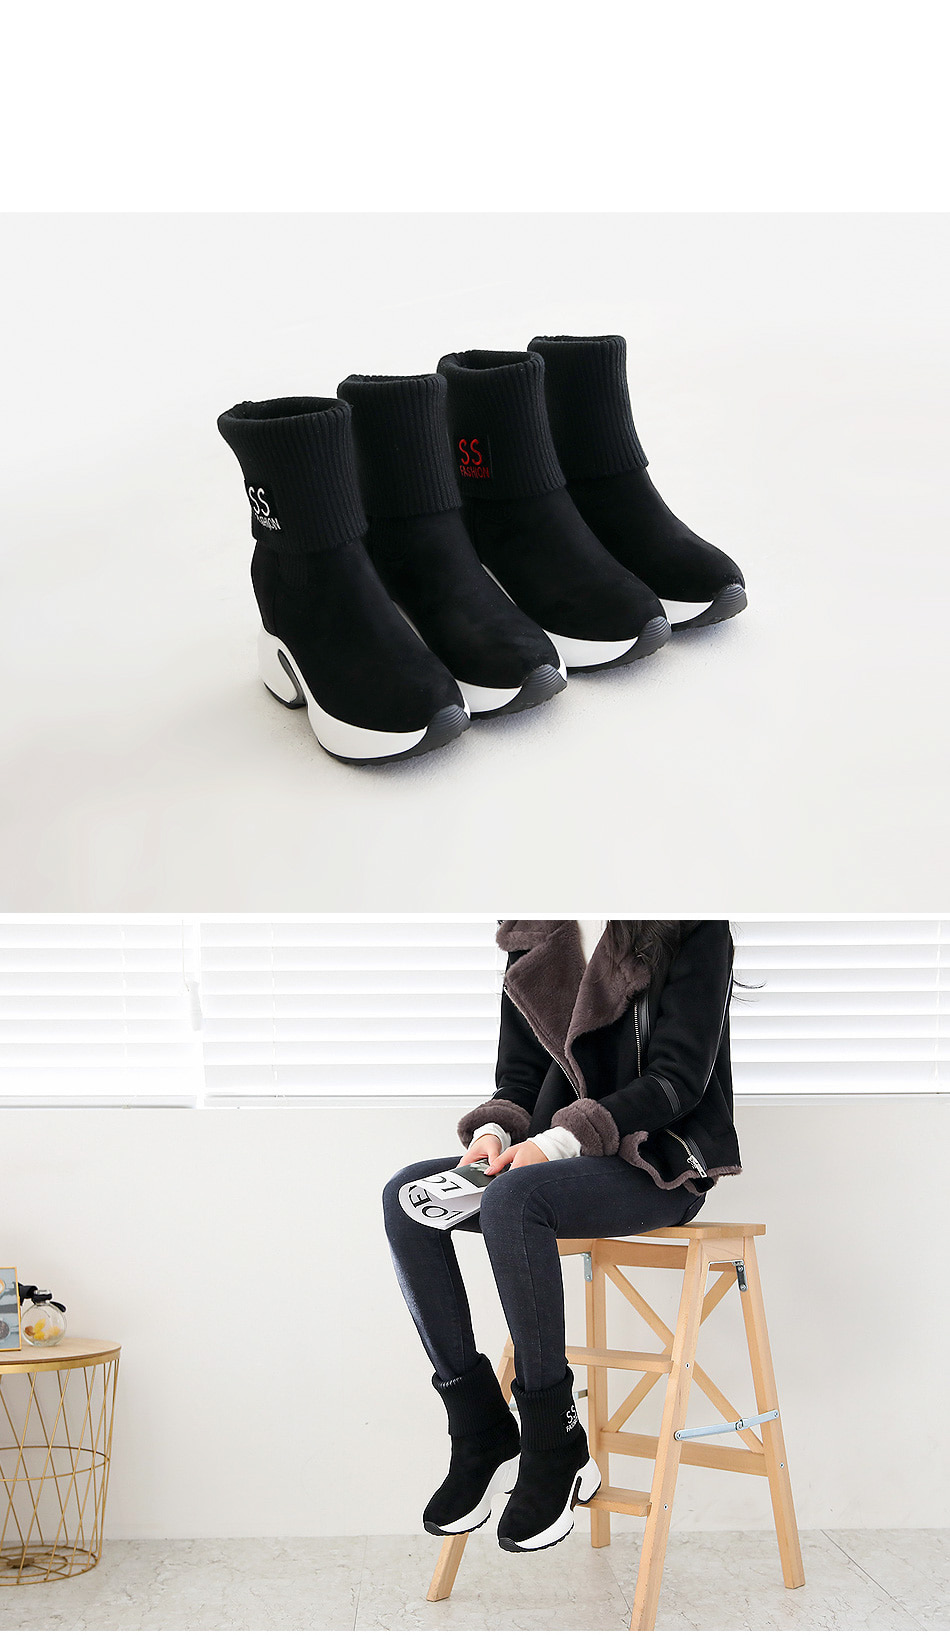 Double S tall socks sneakers 8cm